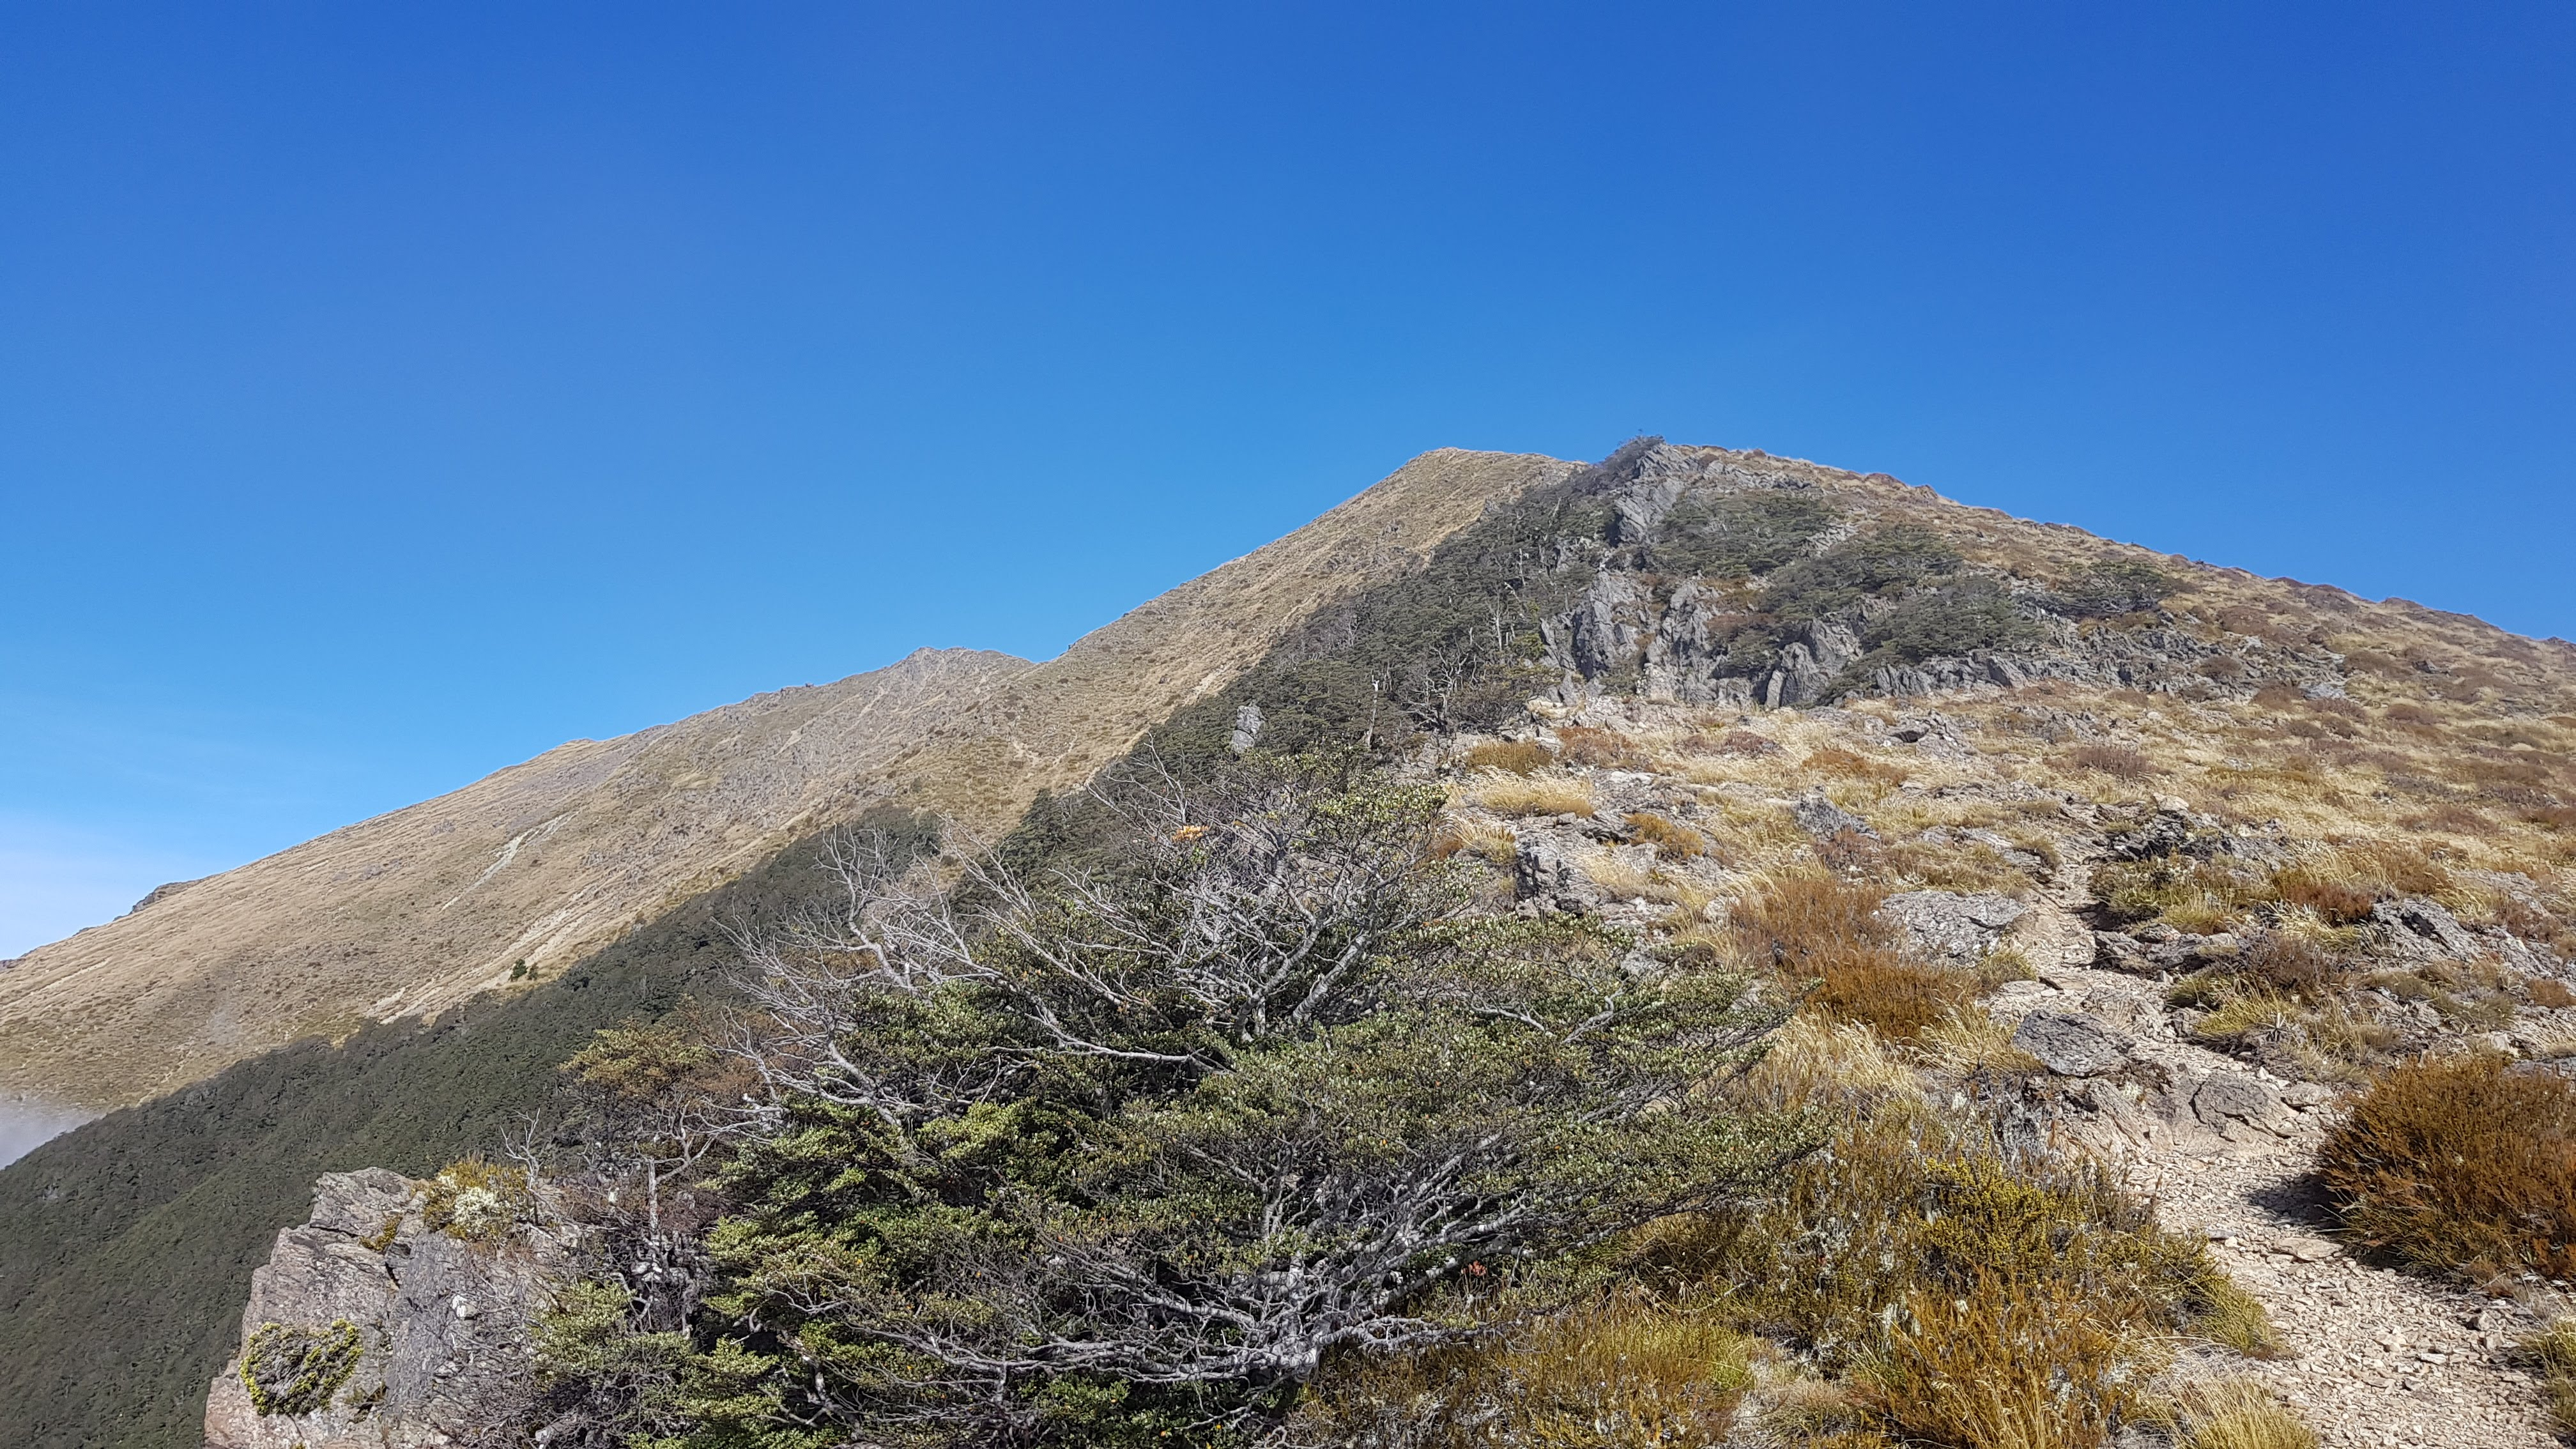 Following the ridgeline up to the summit